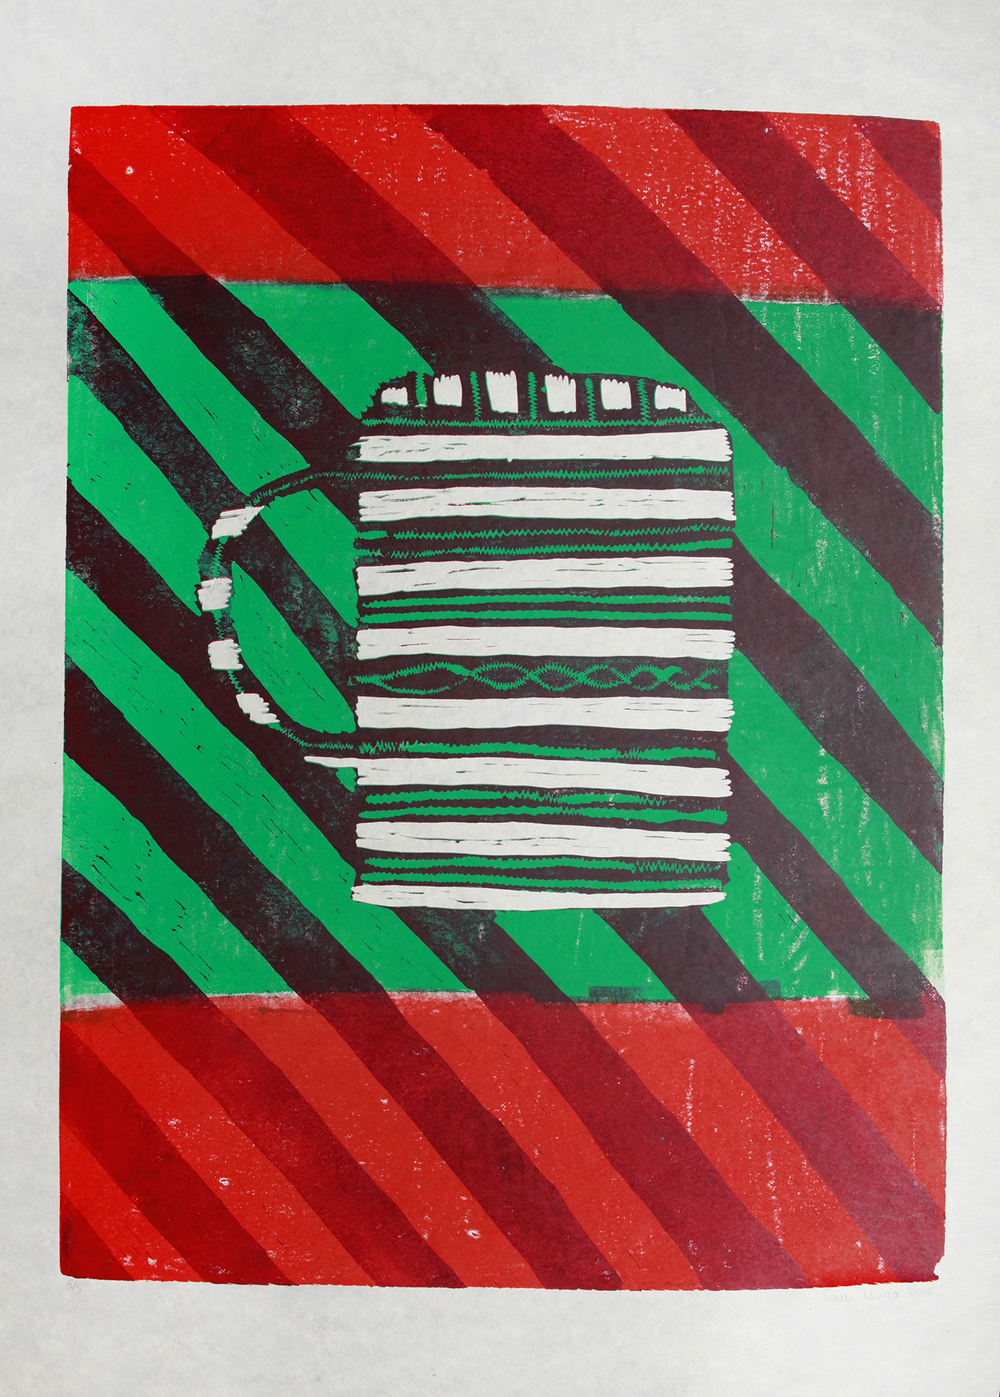 Achoo   Saaki Nuna  Two-Layer Linocut Print on Washi  21.5 x 31""